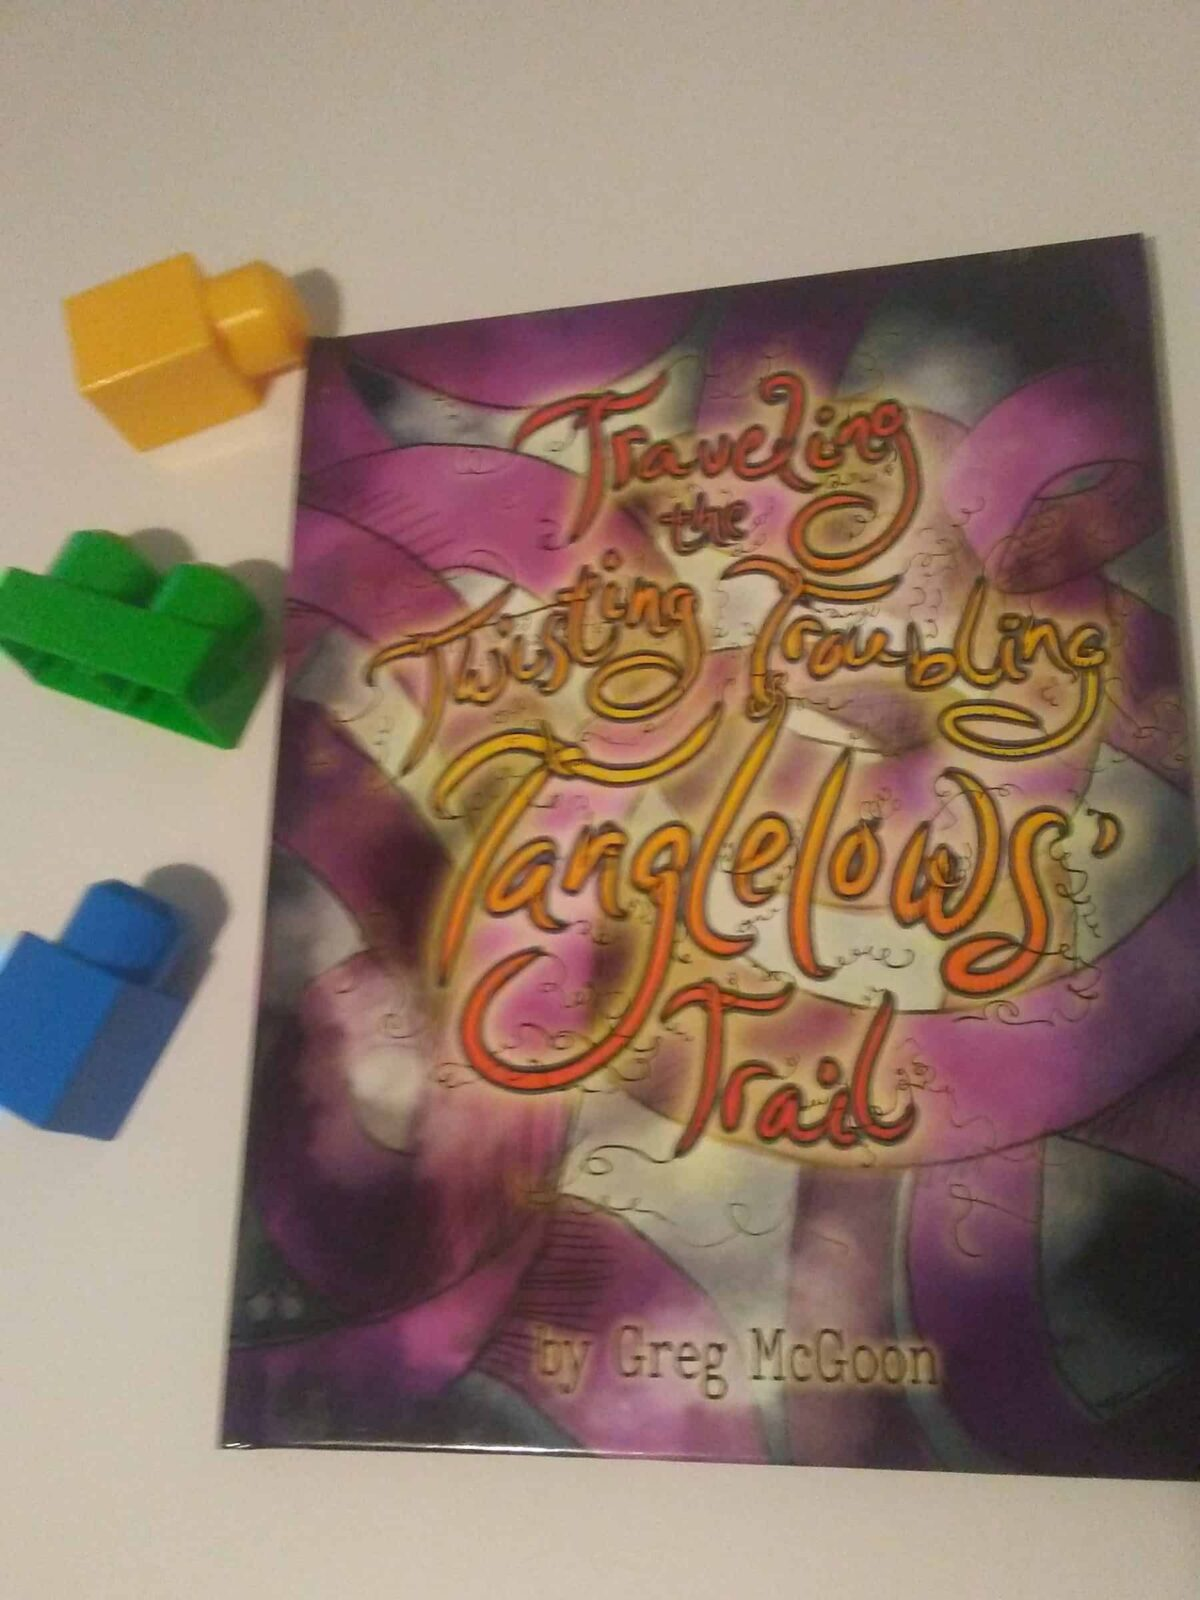 Traveling the Twisting Troubling Tanglelows Trail Book Review & Giveaway